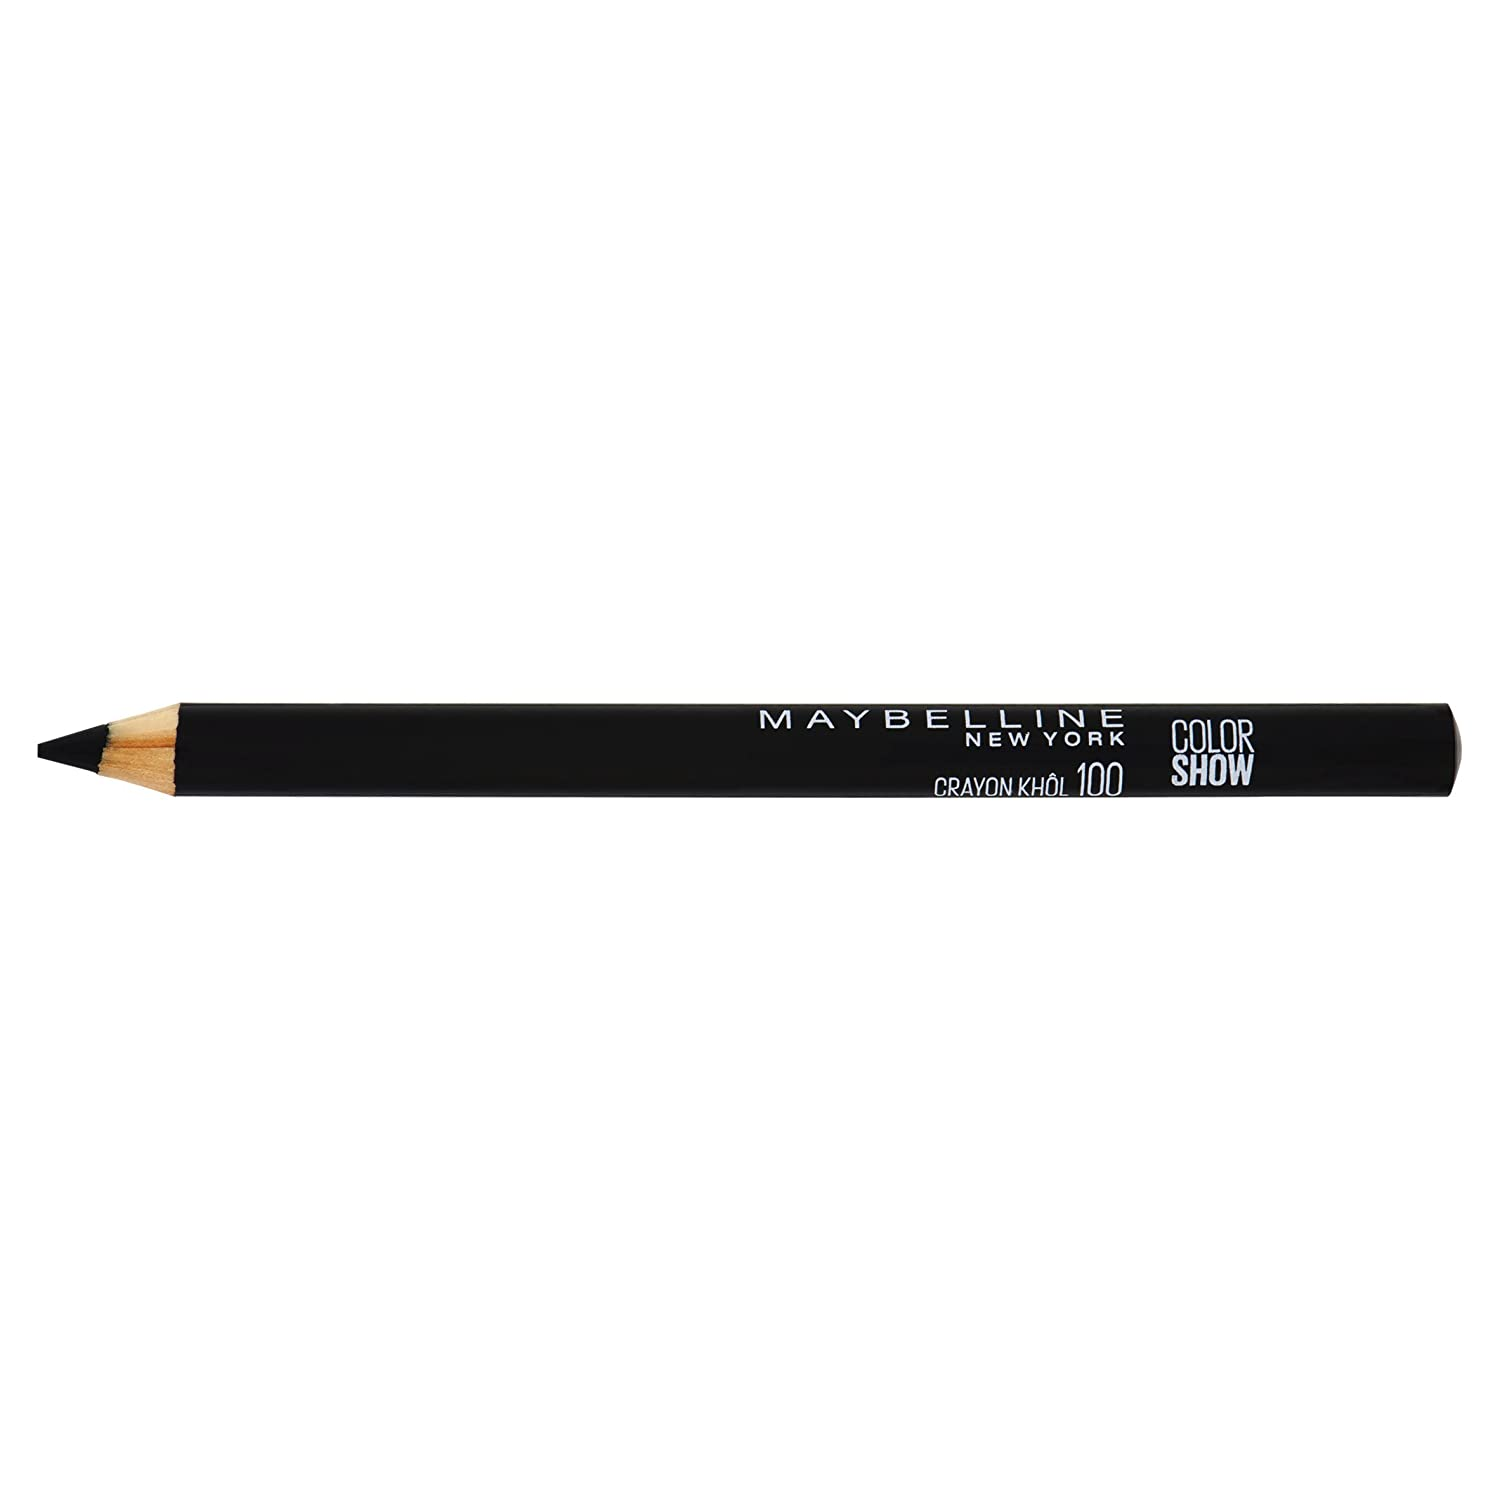 a83438d4a08 Maybelline Color Show Crayon Khol Eyeliner Pencil Number 100, Ultra Black:  Amazon.co.uk: Beauty